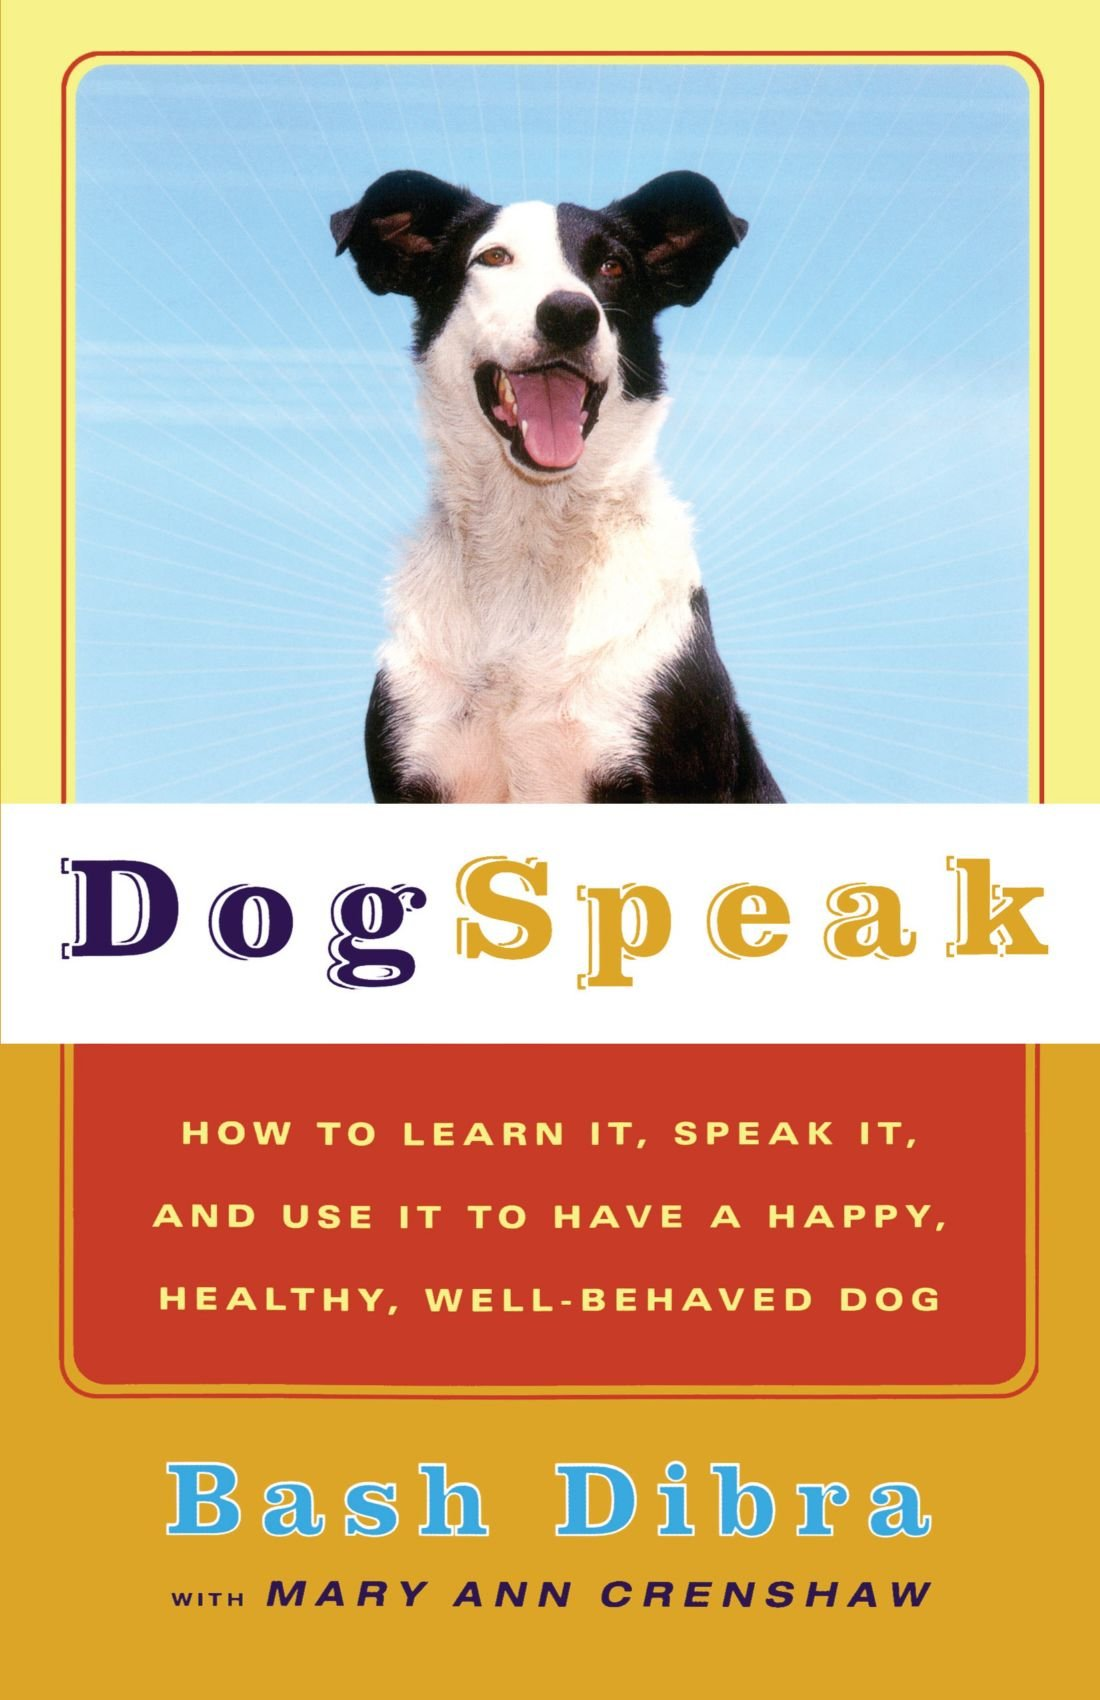 Dogspeak: How to Learn It, Speak it, and Use It to Have a Happy, Healthy, Well-Behaved Dog PDF